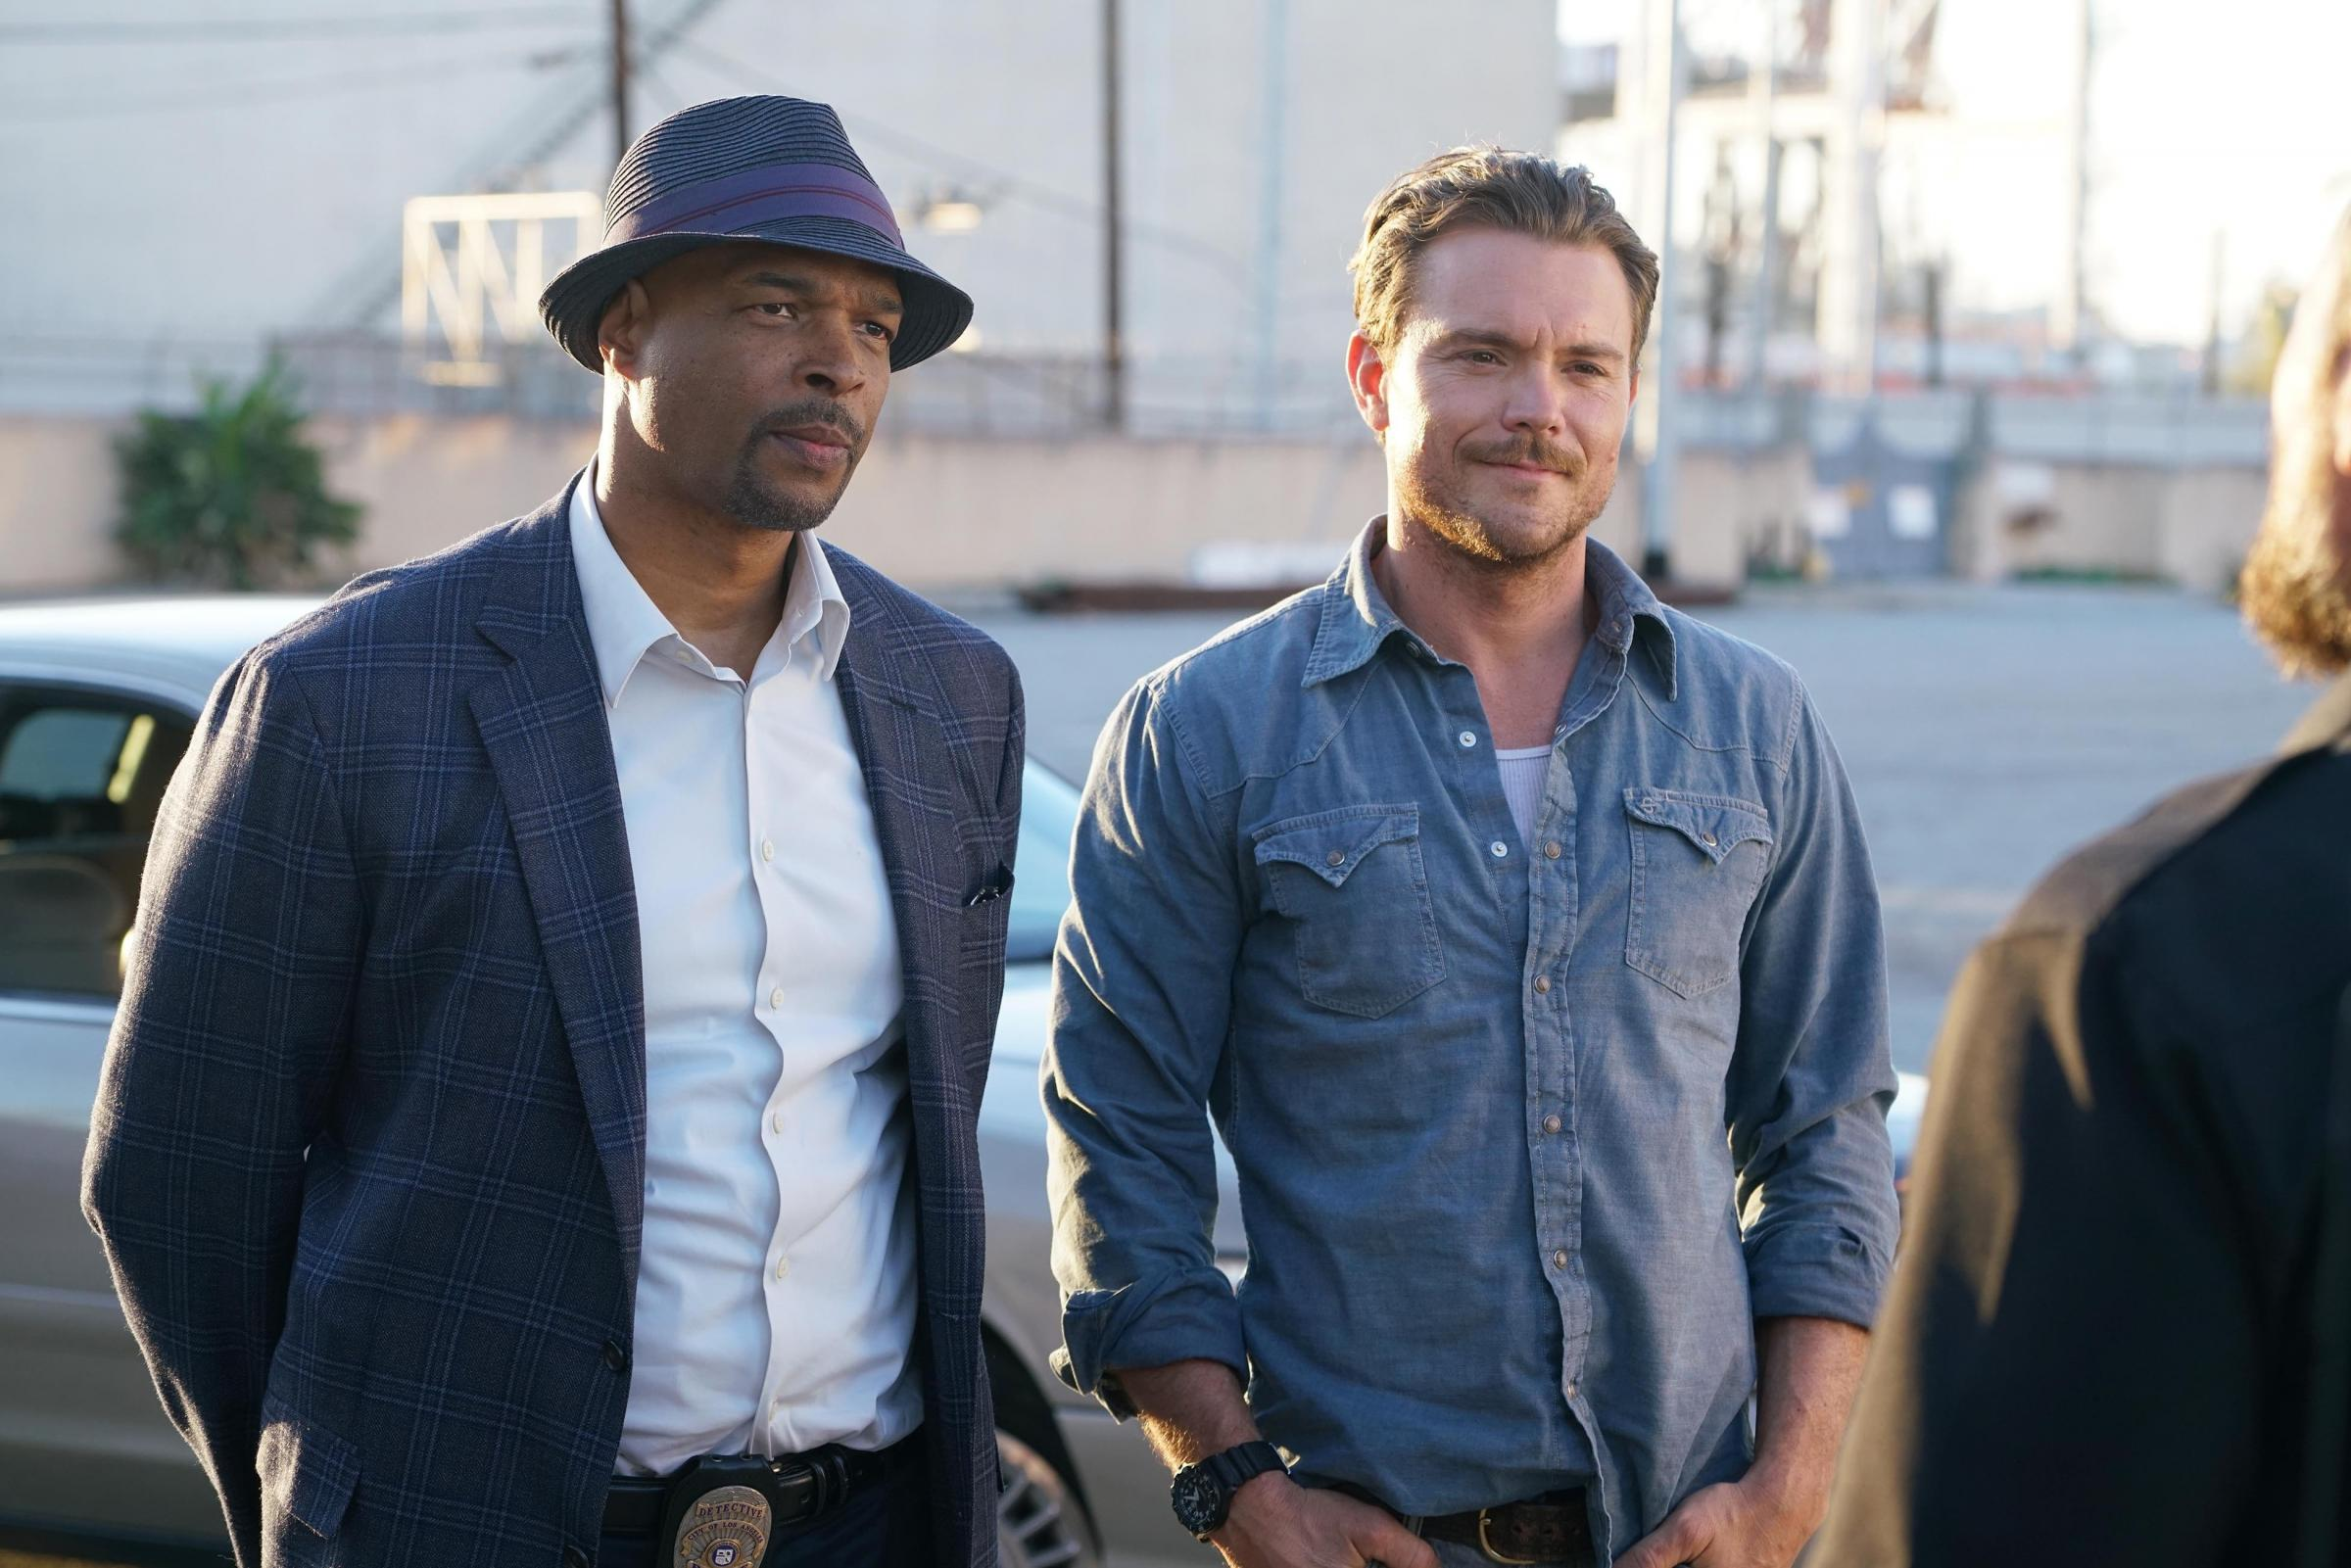 Murtaugh, left, and Riggs investigate the death of a surfer in Lethal Weapon